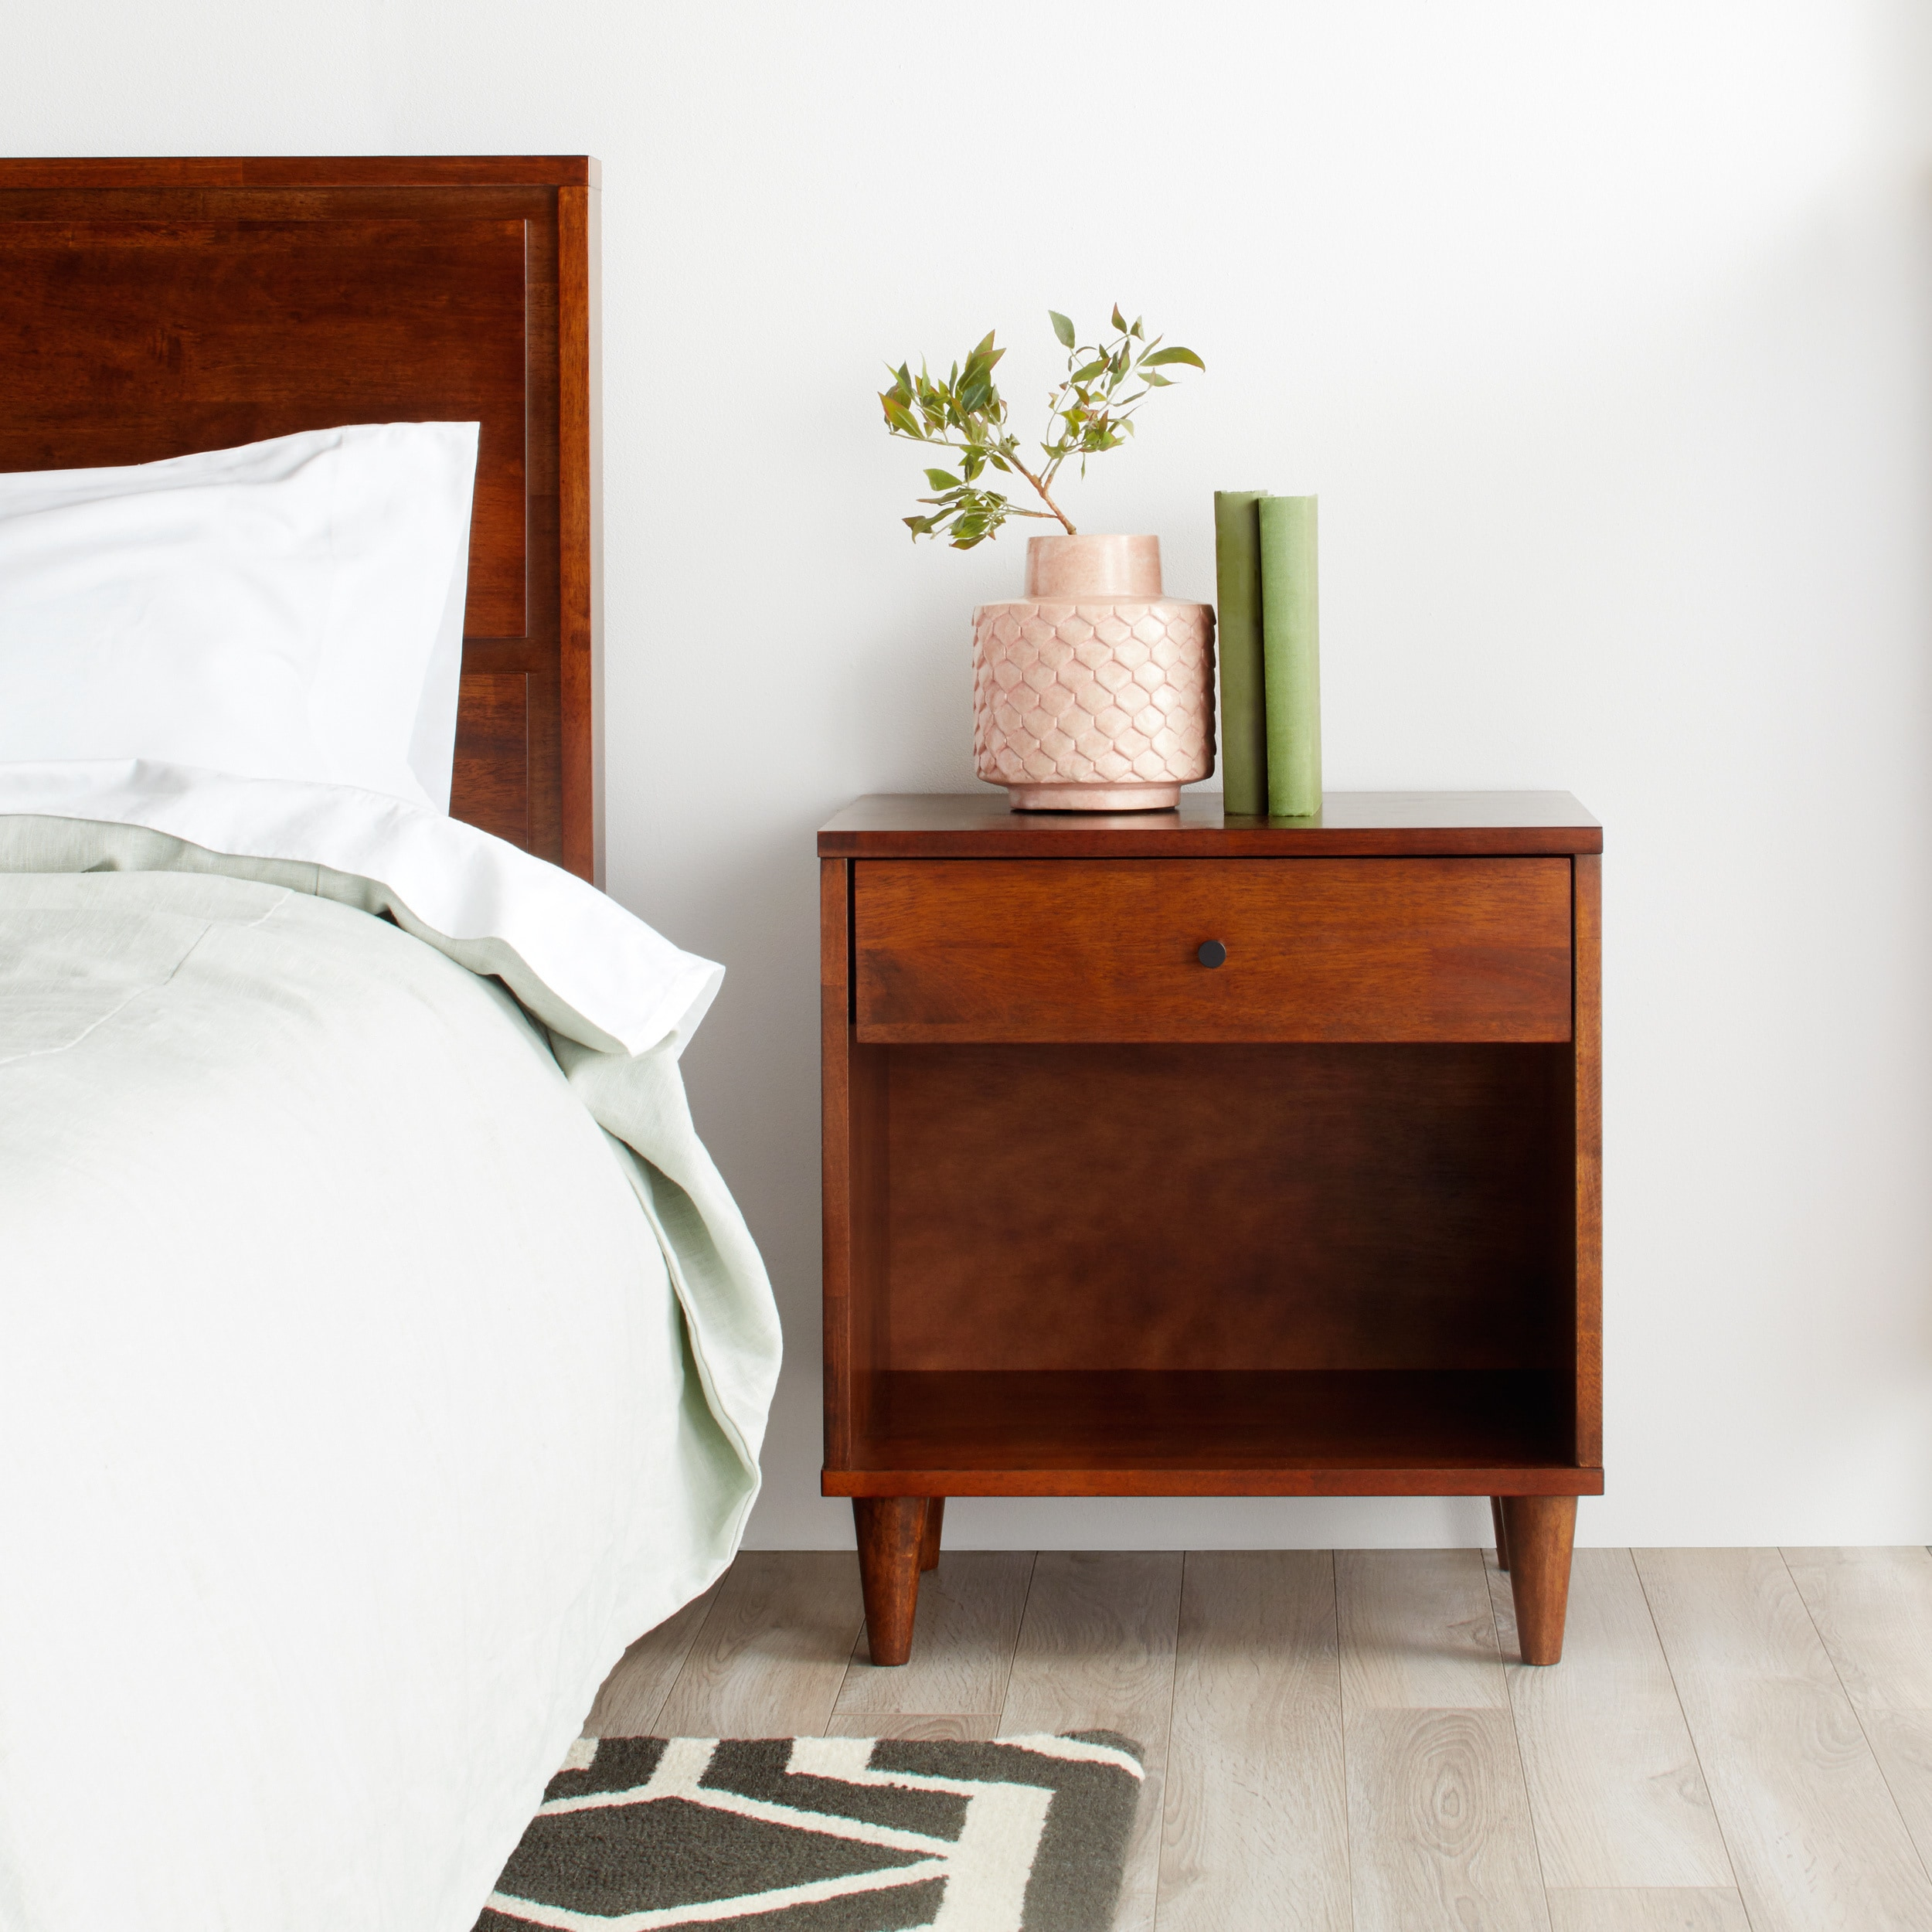 Details About Small Bedside Table 1 Drawer Accent Wood Midcentury Modern  Nightstand Low End